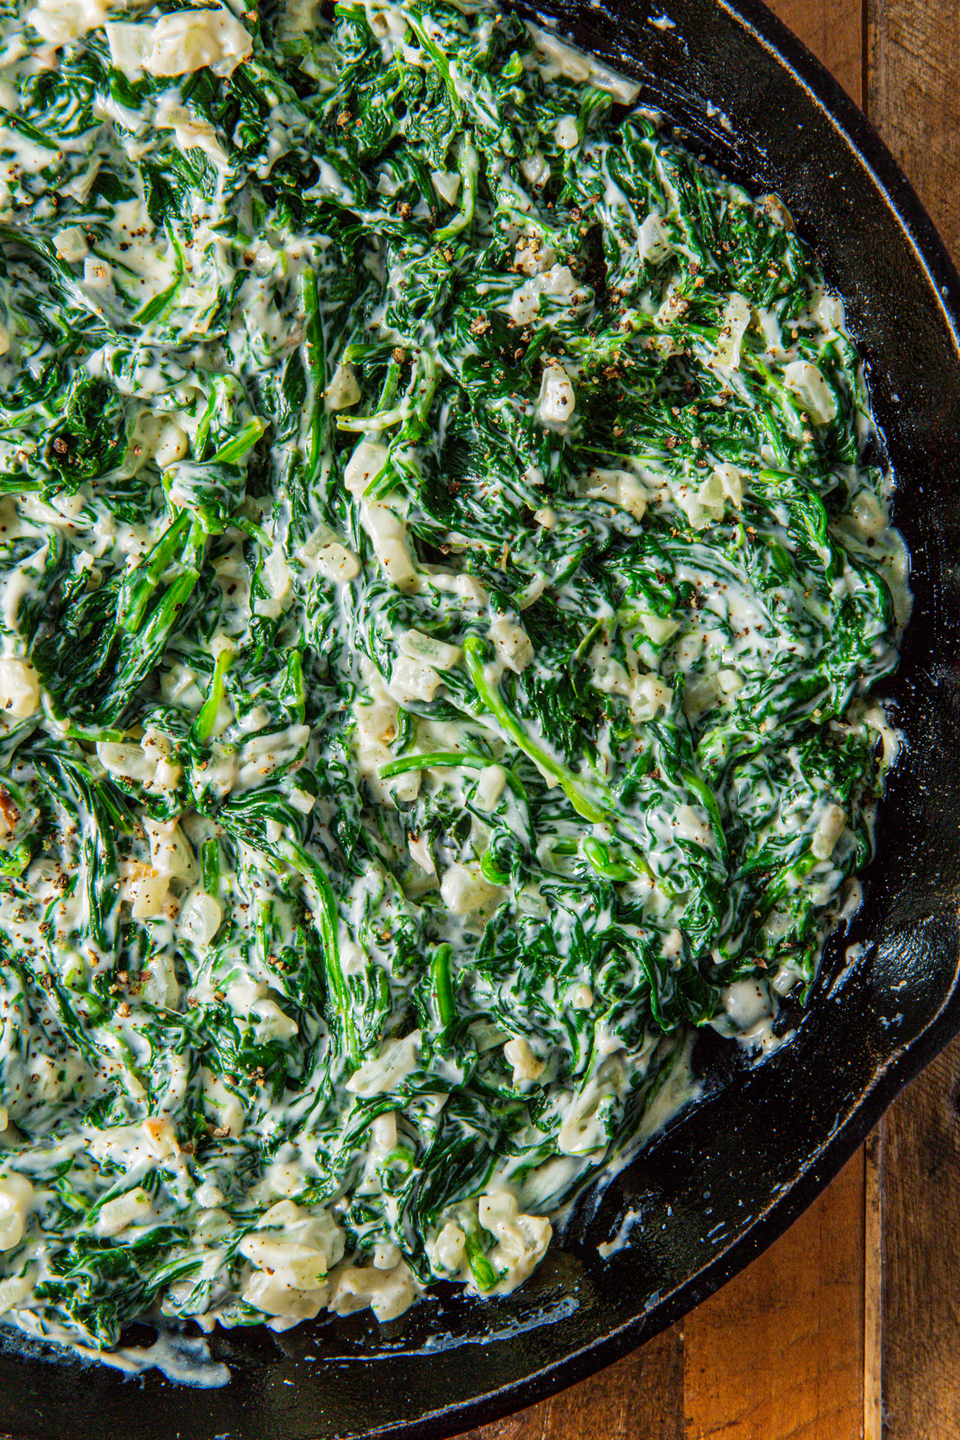 """<p>It tastes SO indulgent.</p><p>Get the recipe from <a href=""""https://www.delish.com/cooking/recipe-ideas/a28510710/easy-creamed-spinach-recipe/"""" rel=""""nofollow noopener"""" target=""""_blank"""" data-ylk=""""slk:Delish"""" class=""""link rapid-noclick-resp"""">Delish</a>.</p>"""